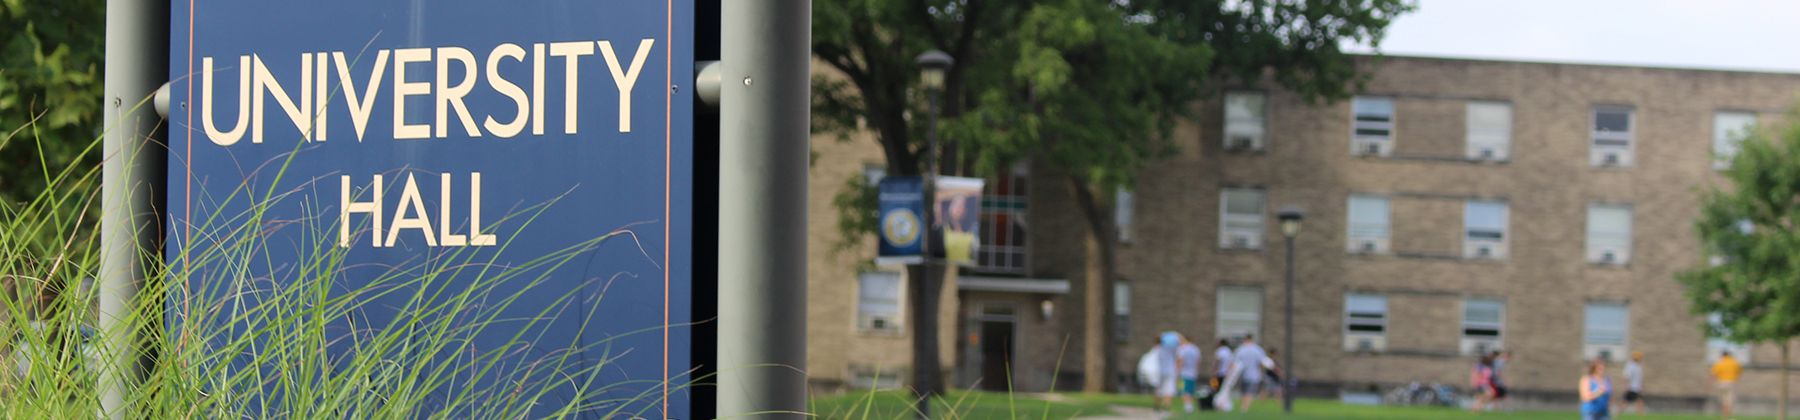 Returning Marian University students may be assigned to University Hall